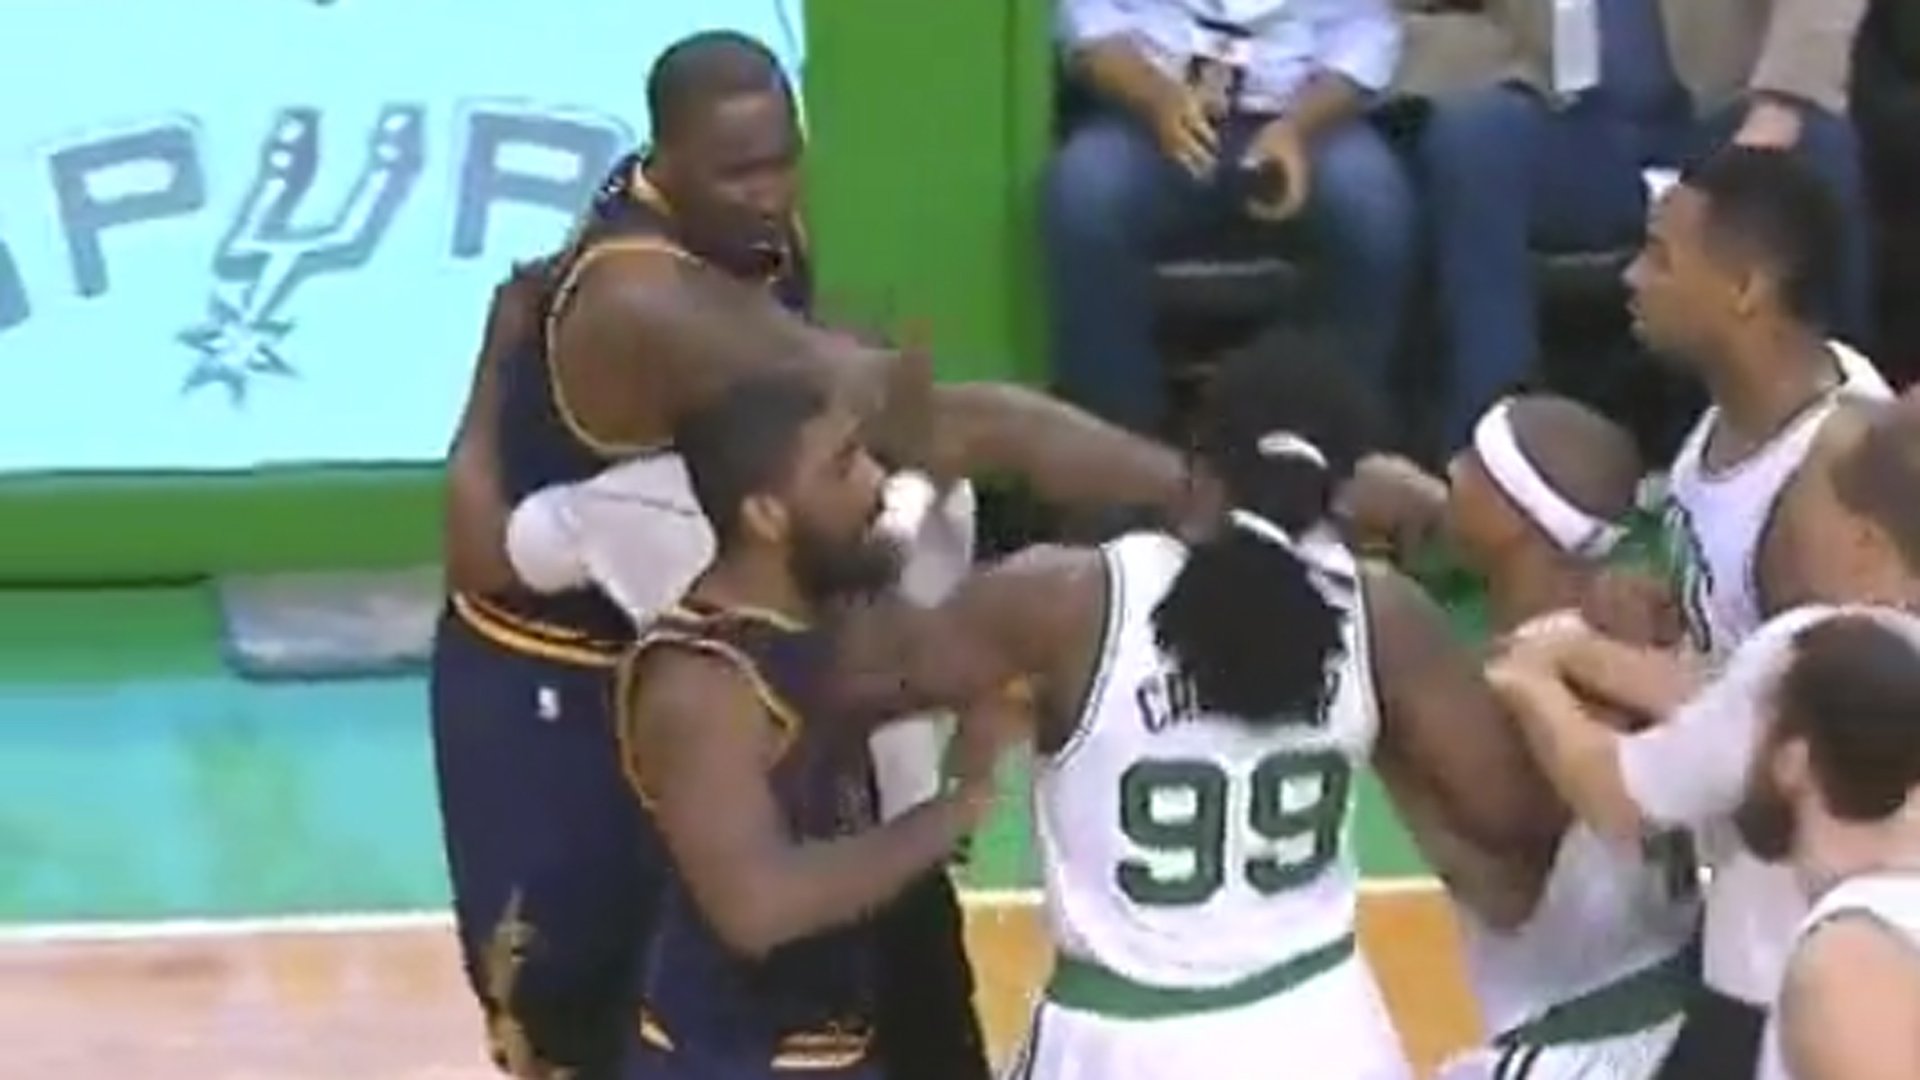 Kendrick Perkins plows into Jae Crowder; scuffle ensues